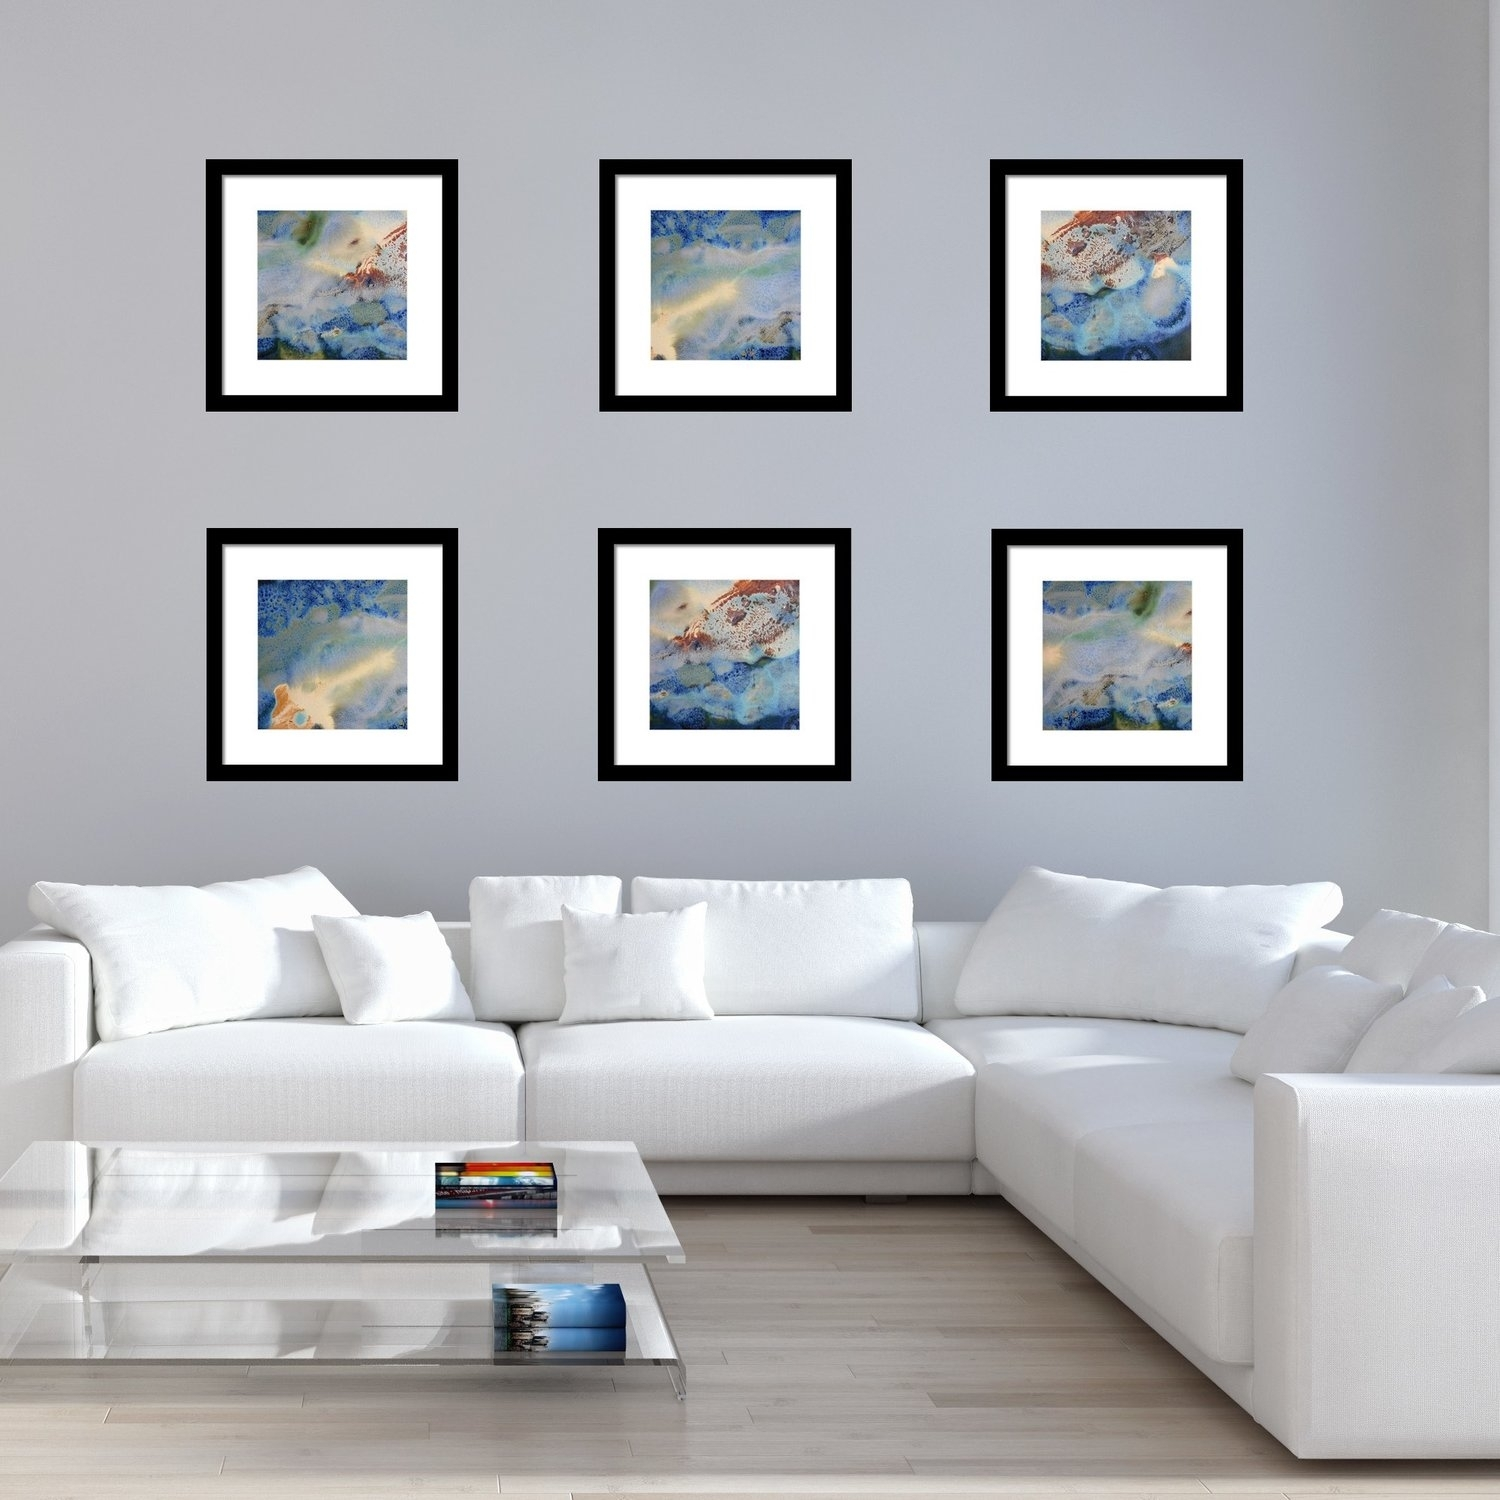 framed wall art for living room 2018 popular framed prints for living room 24047